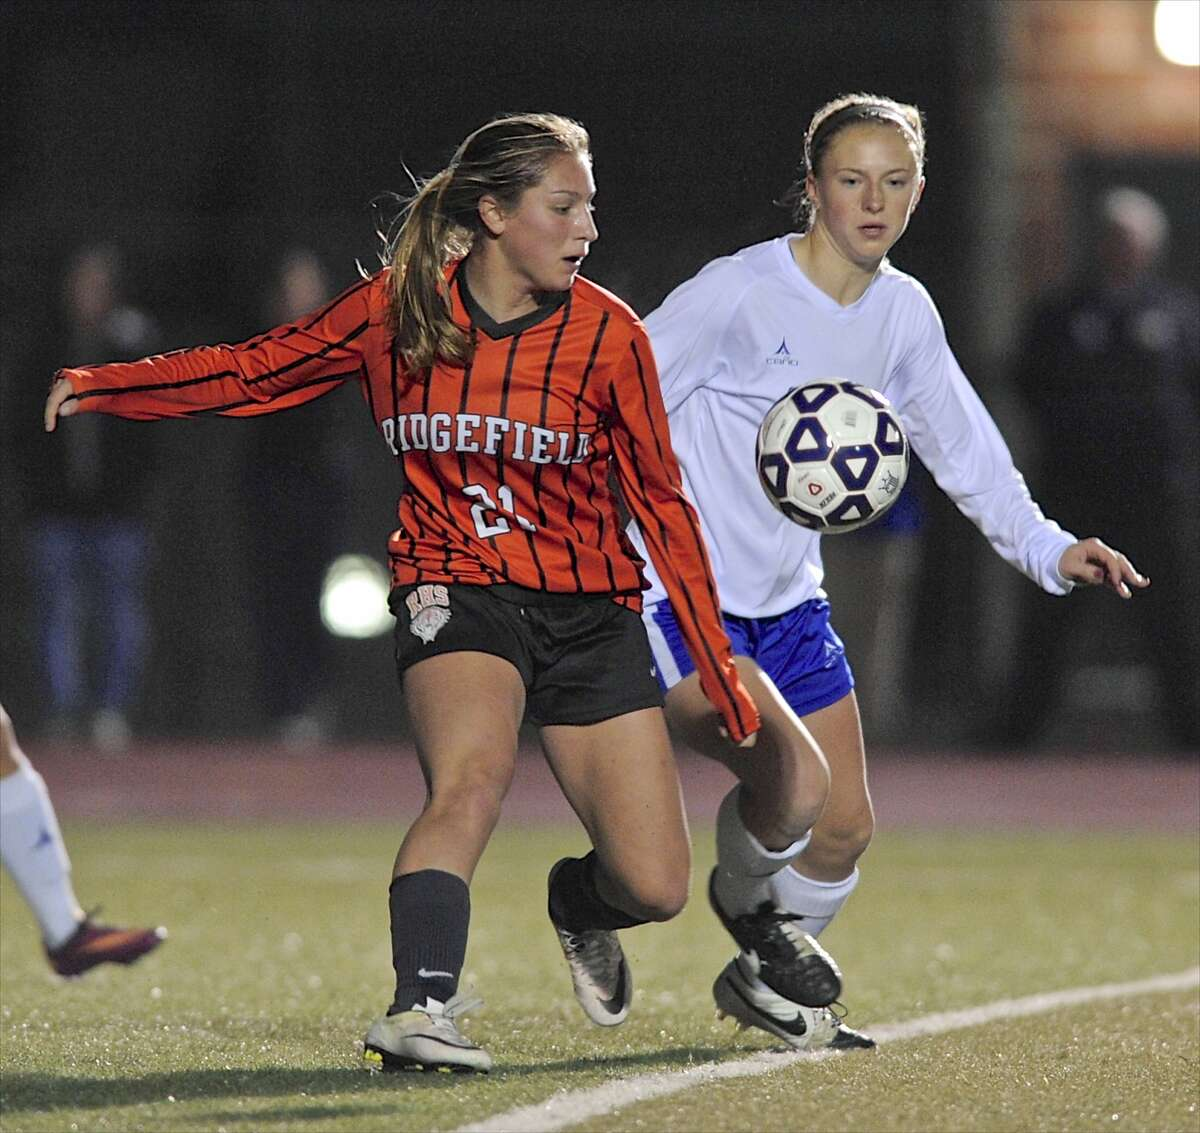 Ridgefield girls soccer The Tigers are 9-0-2 and have only been scored upon four times.